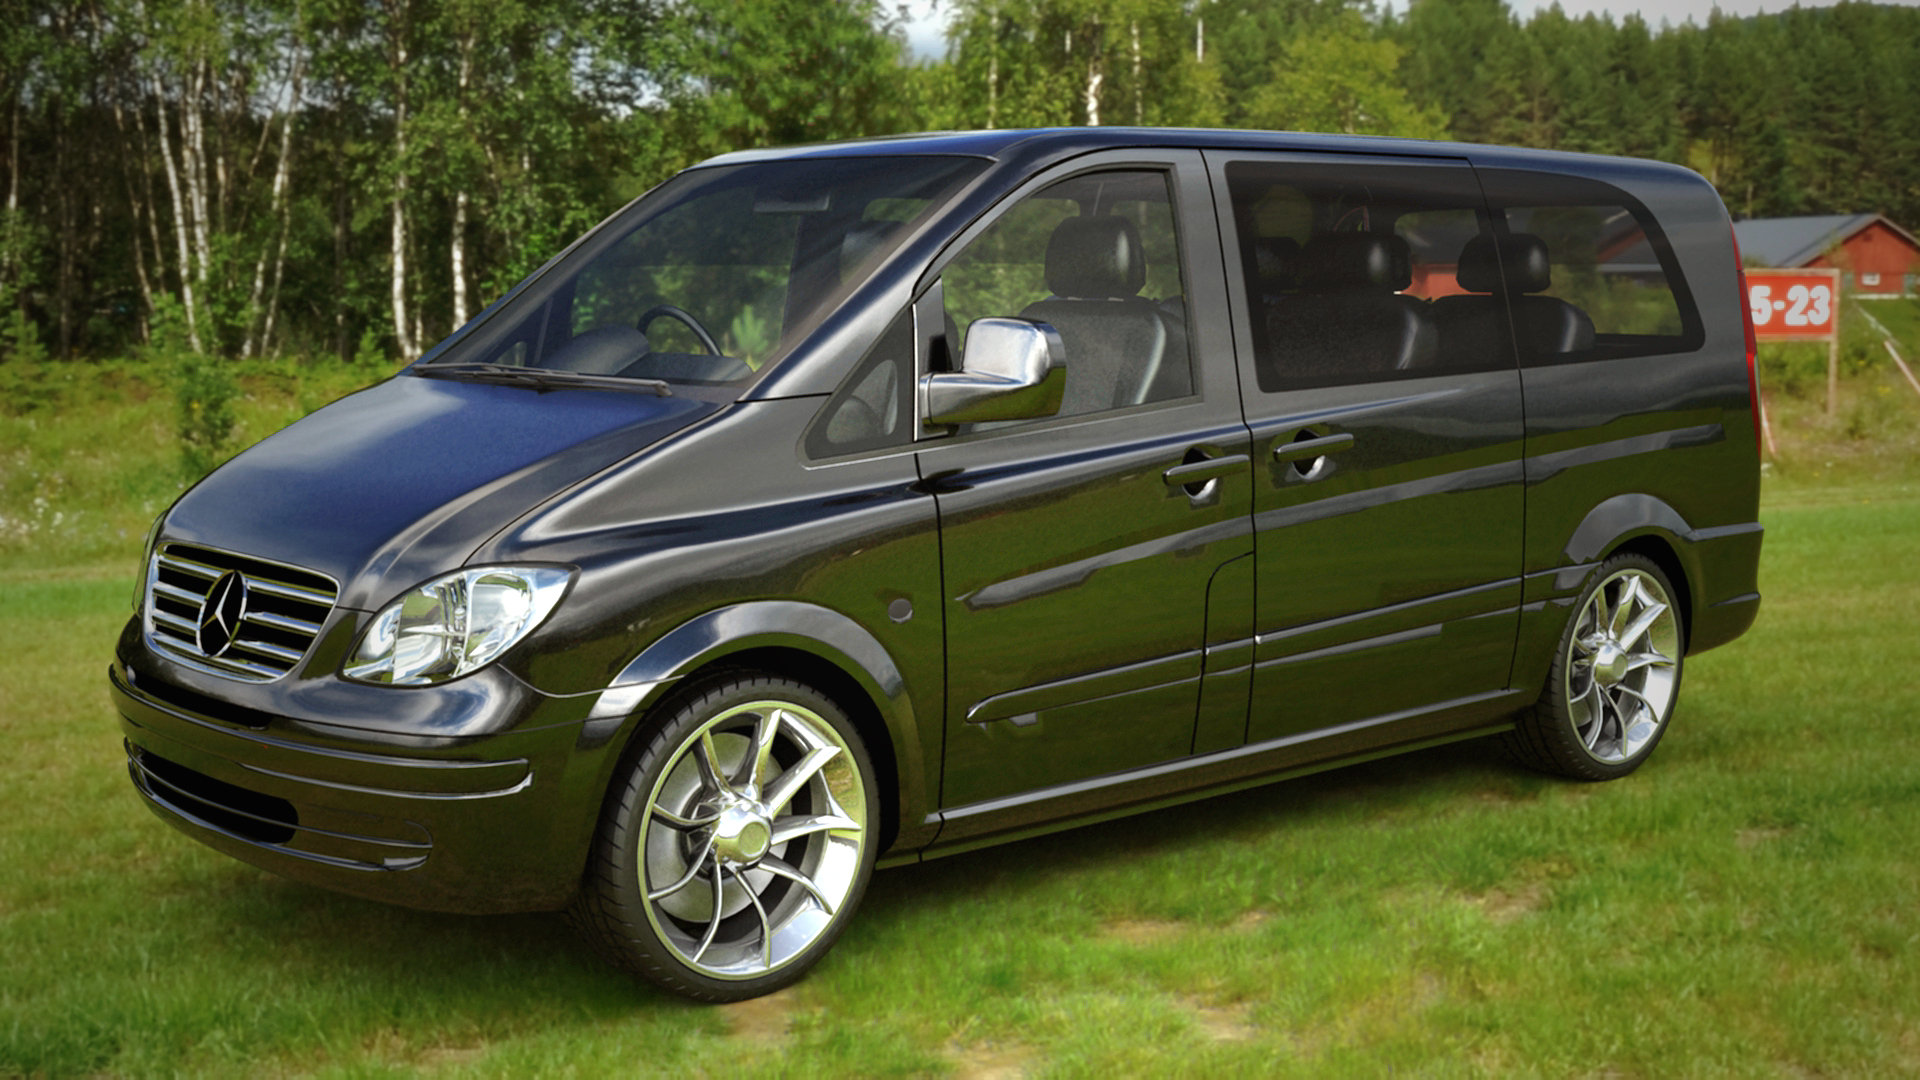 image gallery 2010 mercedes benz vito. Black Bedroom Furniture Sets. Home Design Ideas